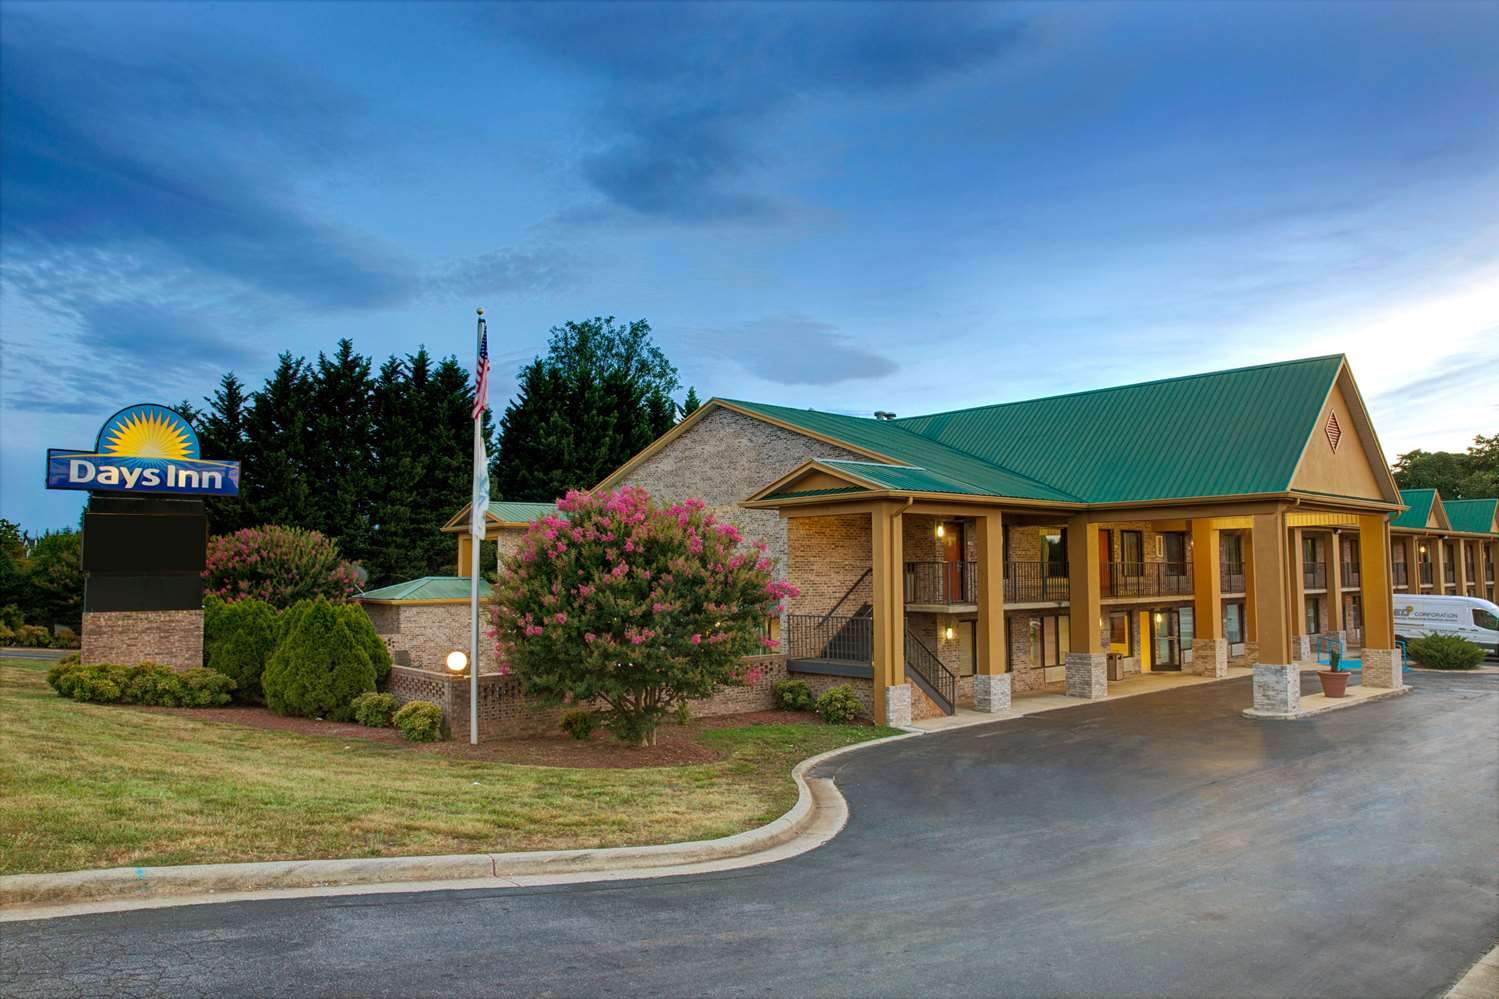 Days Inn Conover